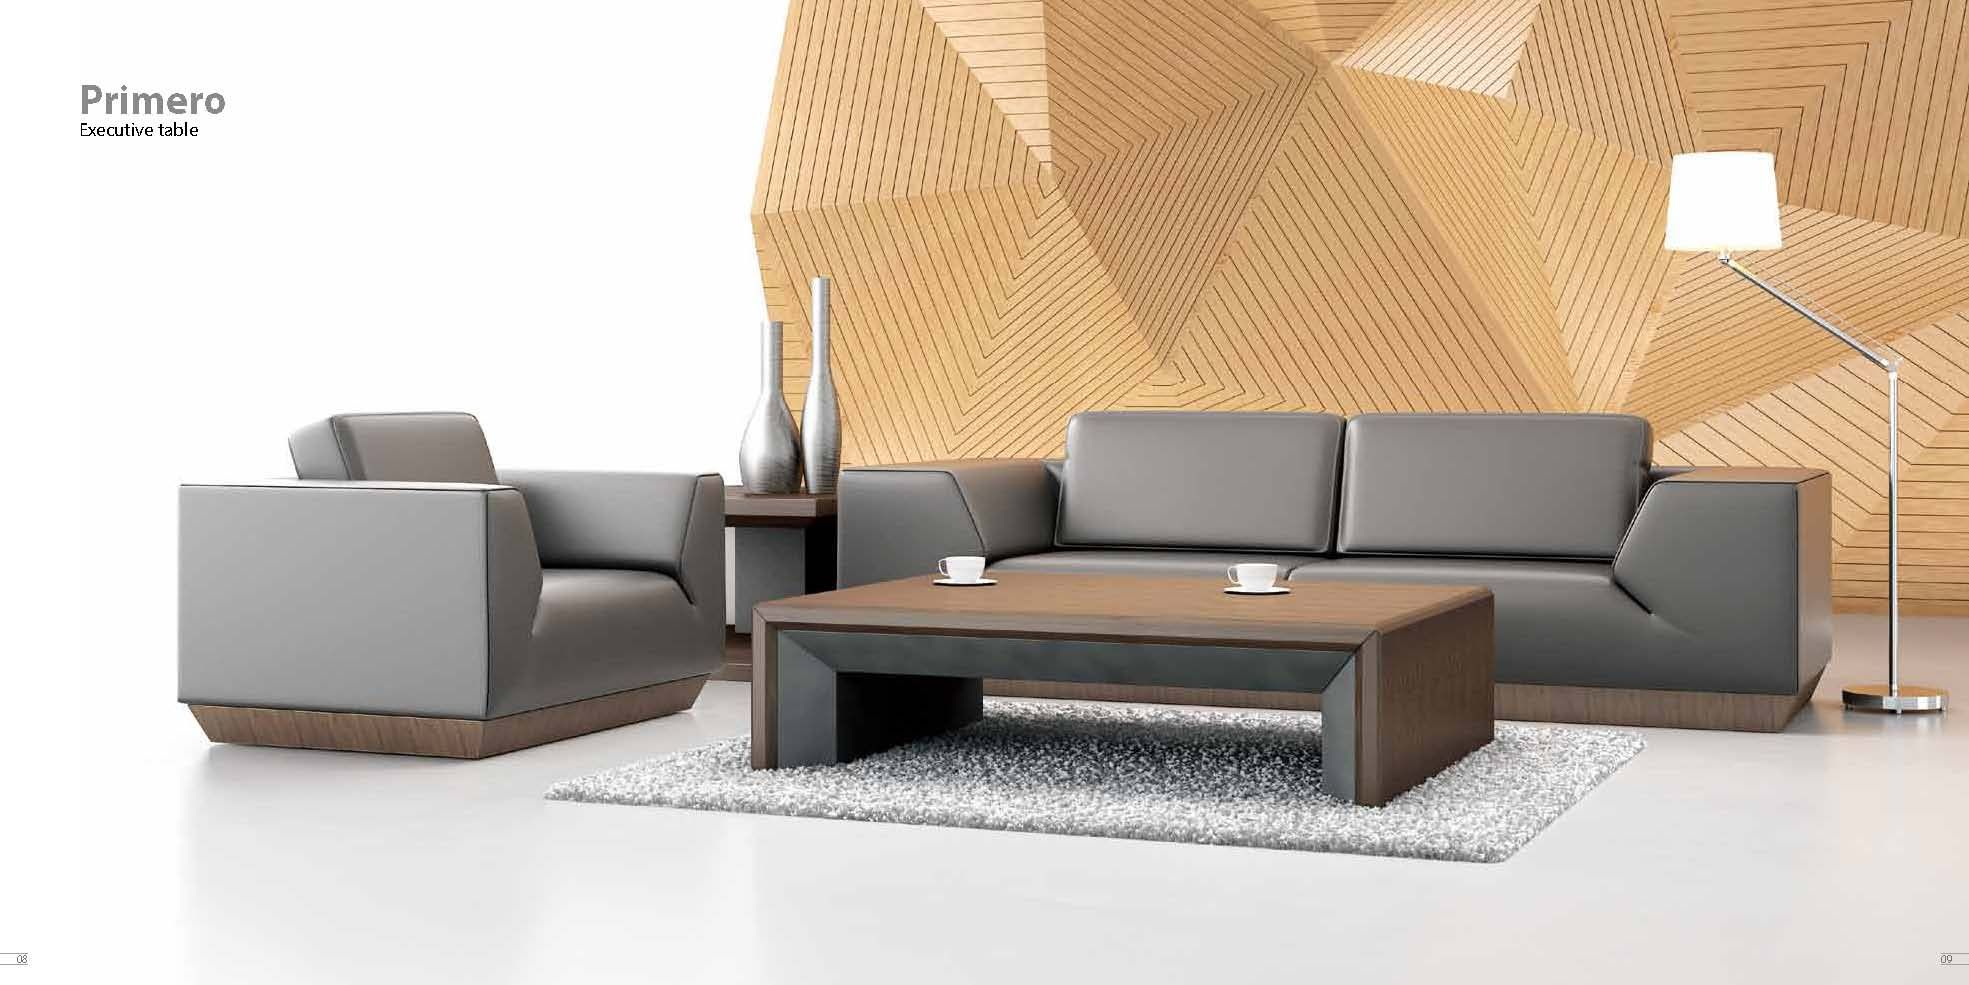 Sofas And Chairs Furniture Design Luxury Office Furniture Sofa